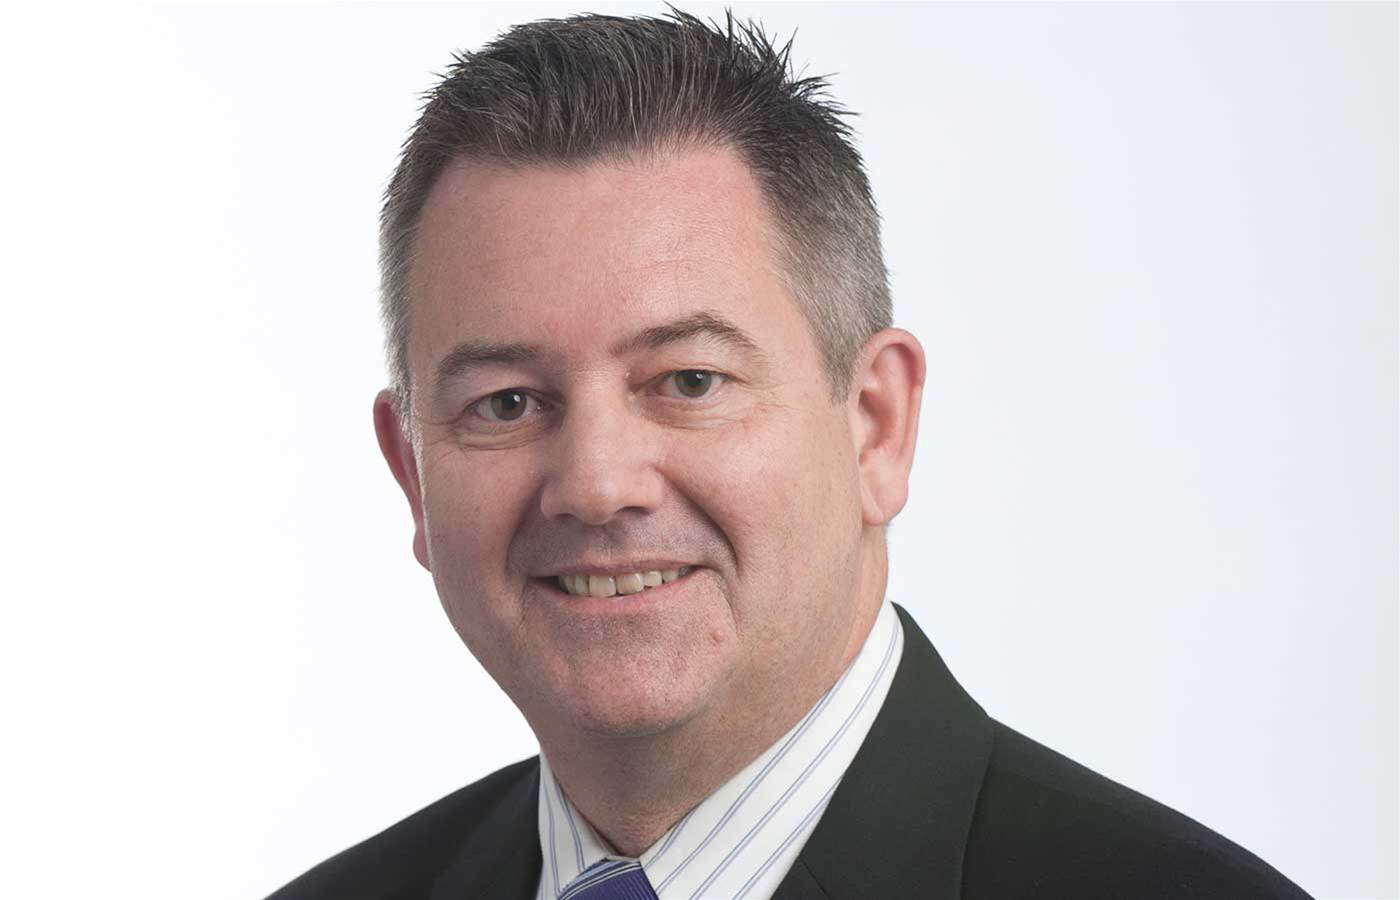 Telstra group managing director for networks Mike Wright departs after 38 years of service